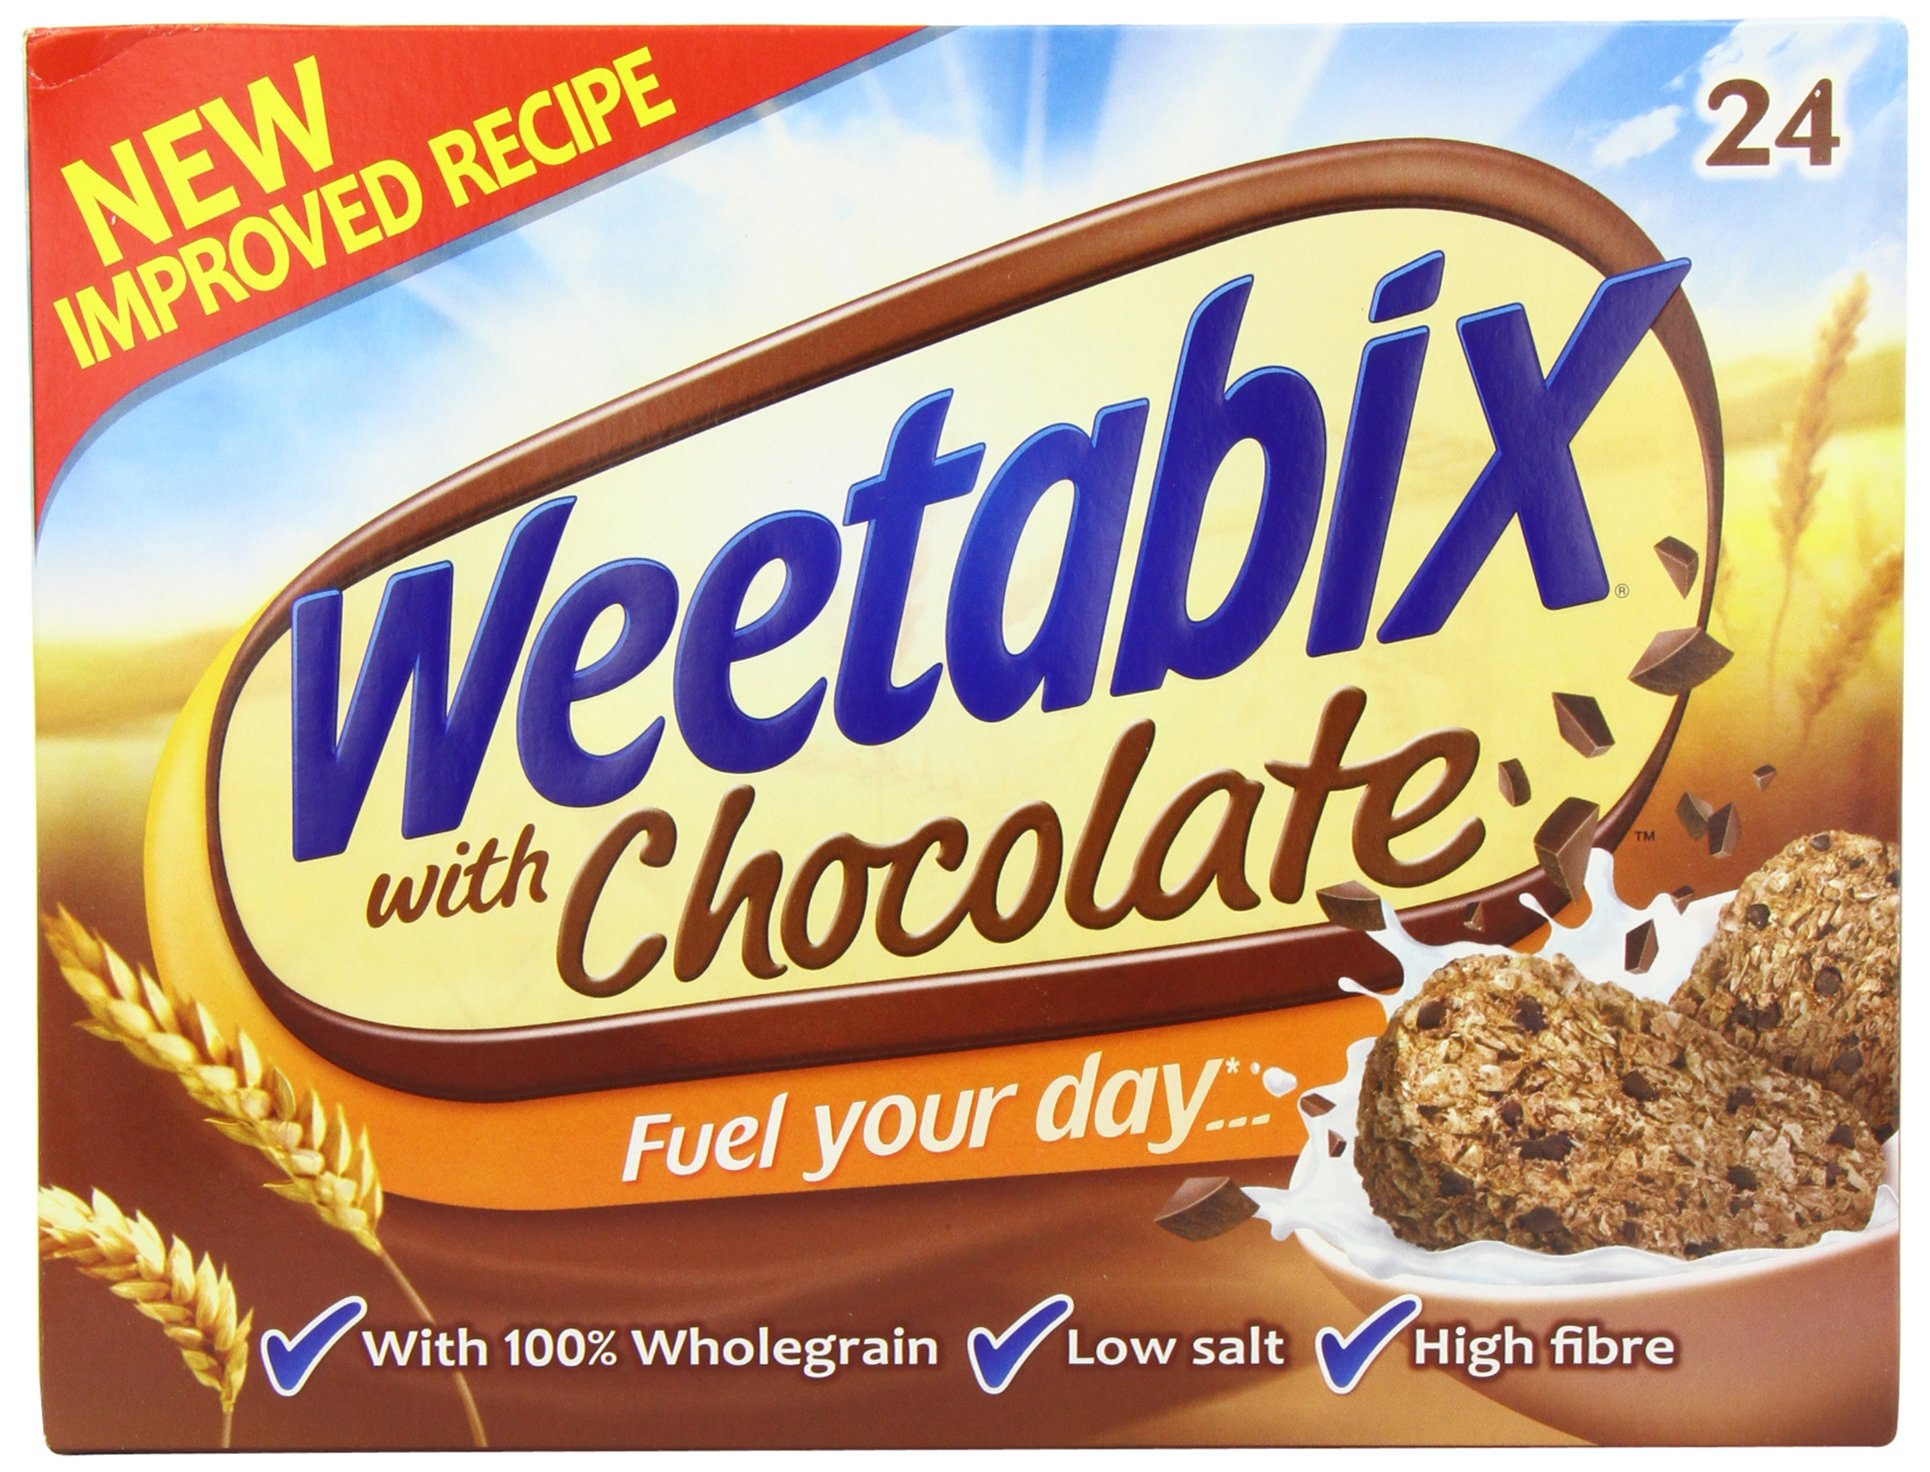 Weetabix Chocolate 24 Pack 540g ( May arrive in 2 pack of 12 or 1 pack of 24)